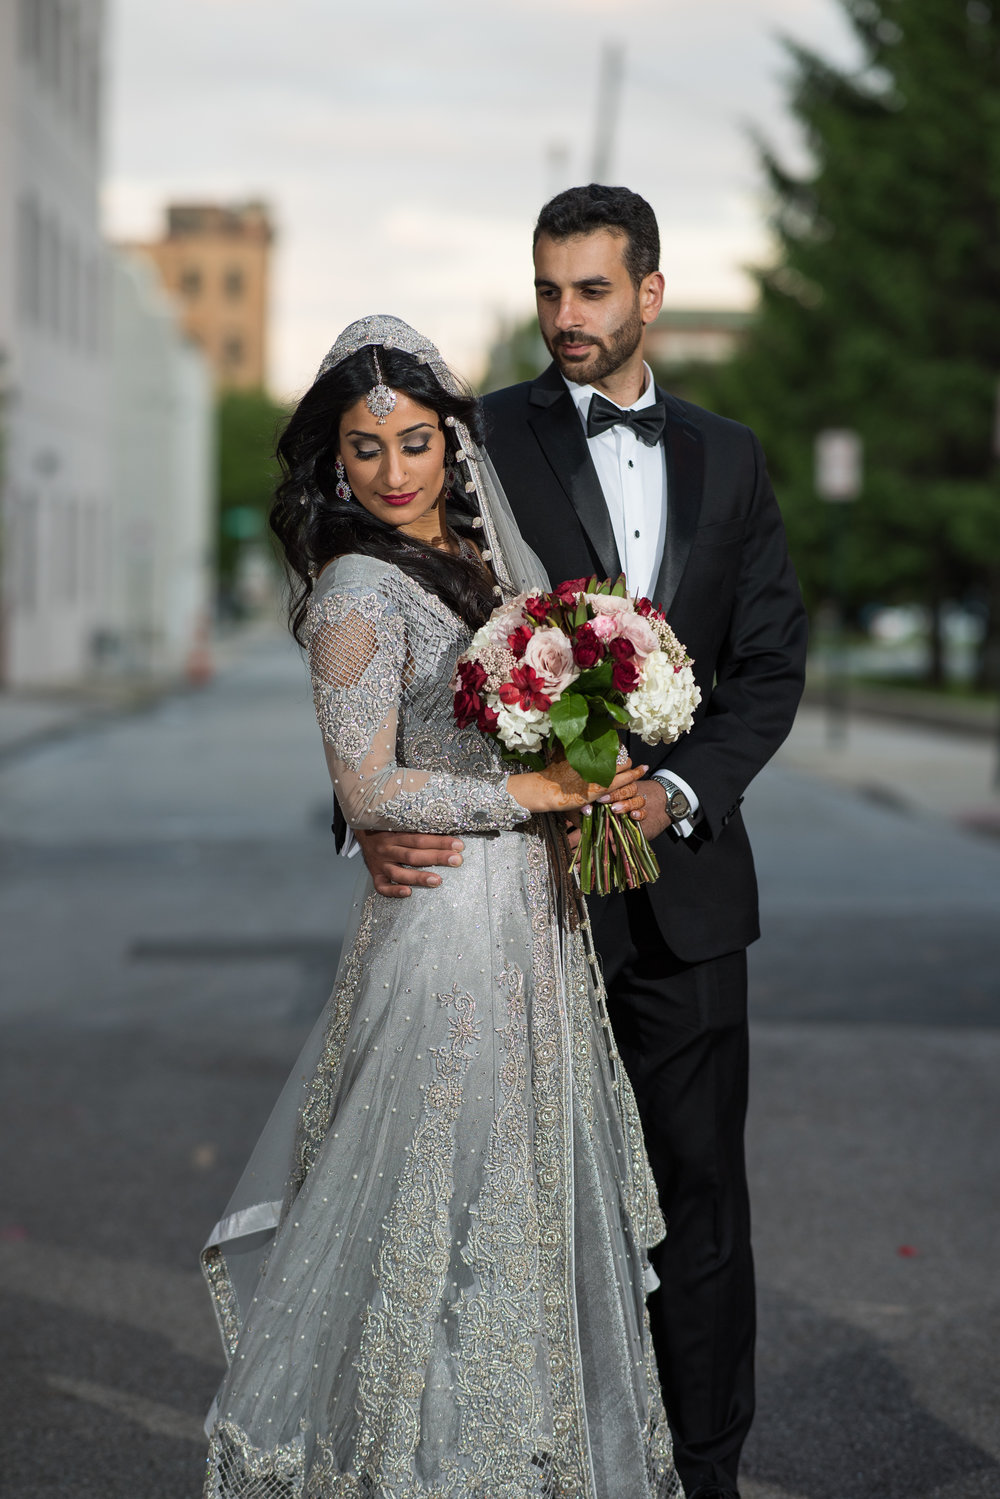 MAARIA+ALI WEDDING PREVIEWS